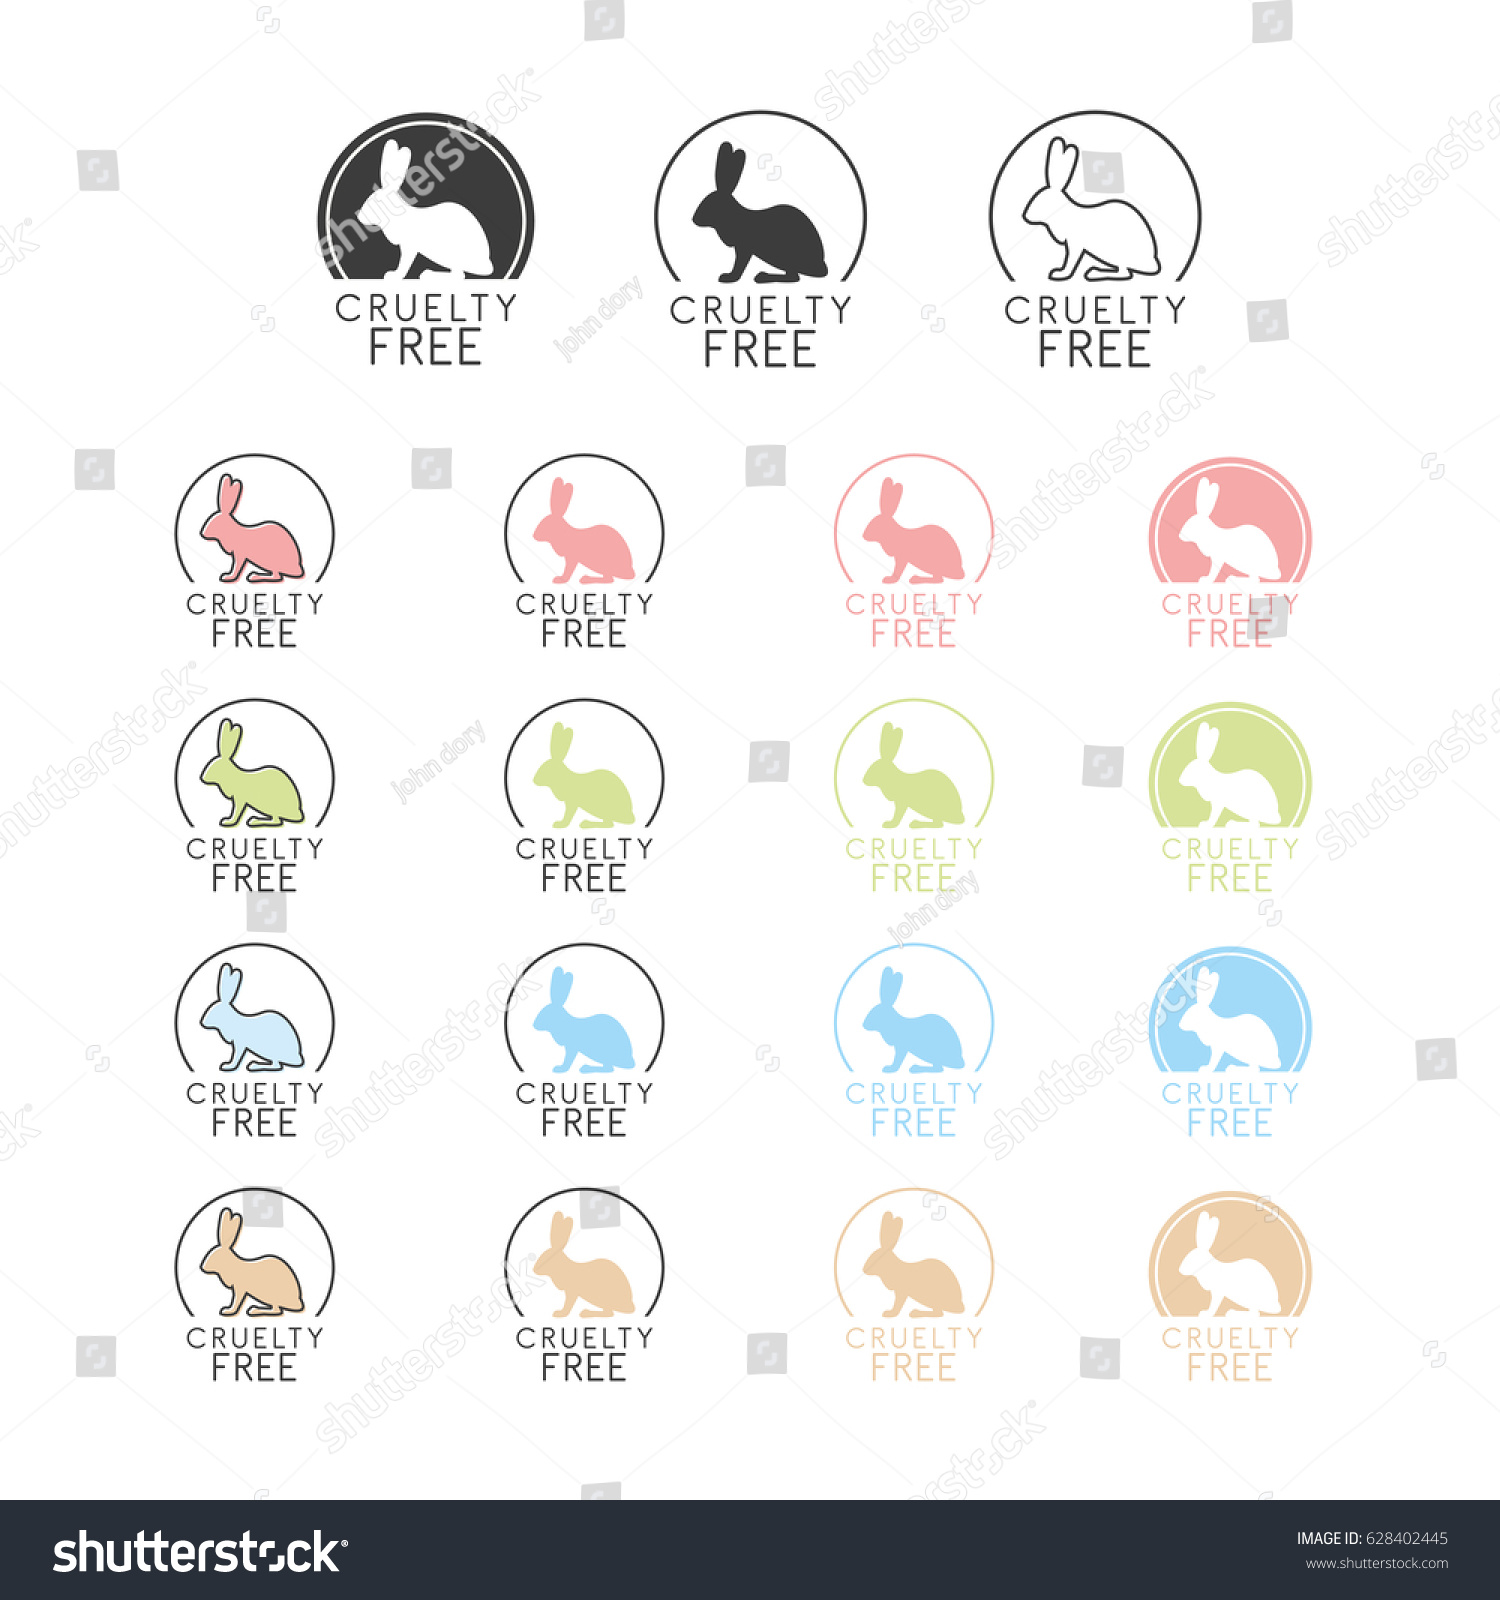 Animal cruelty free symbol can be stock vector 628402445 shutterstock animal cruelty free symbol can be used as sticker logo stamp icon biocorpaavc Gallery